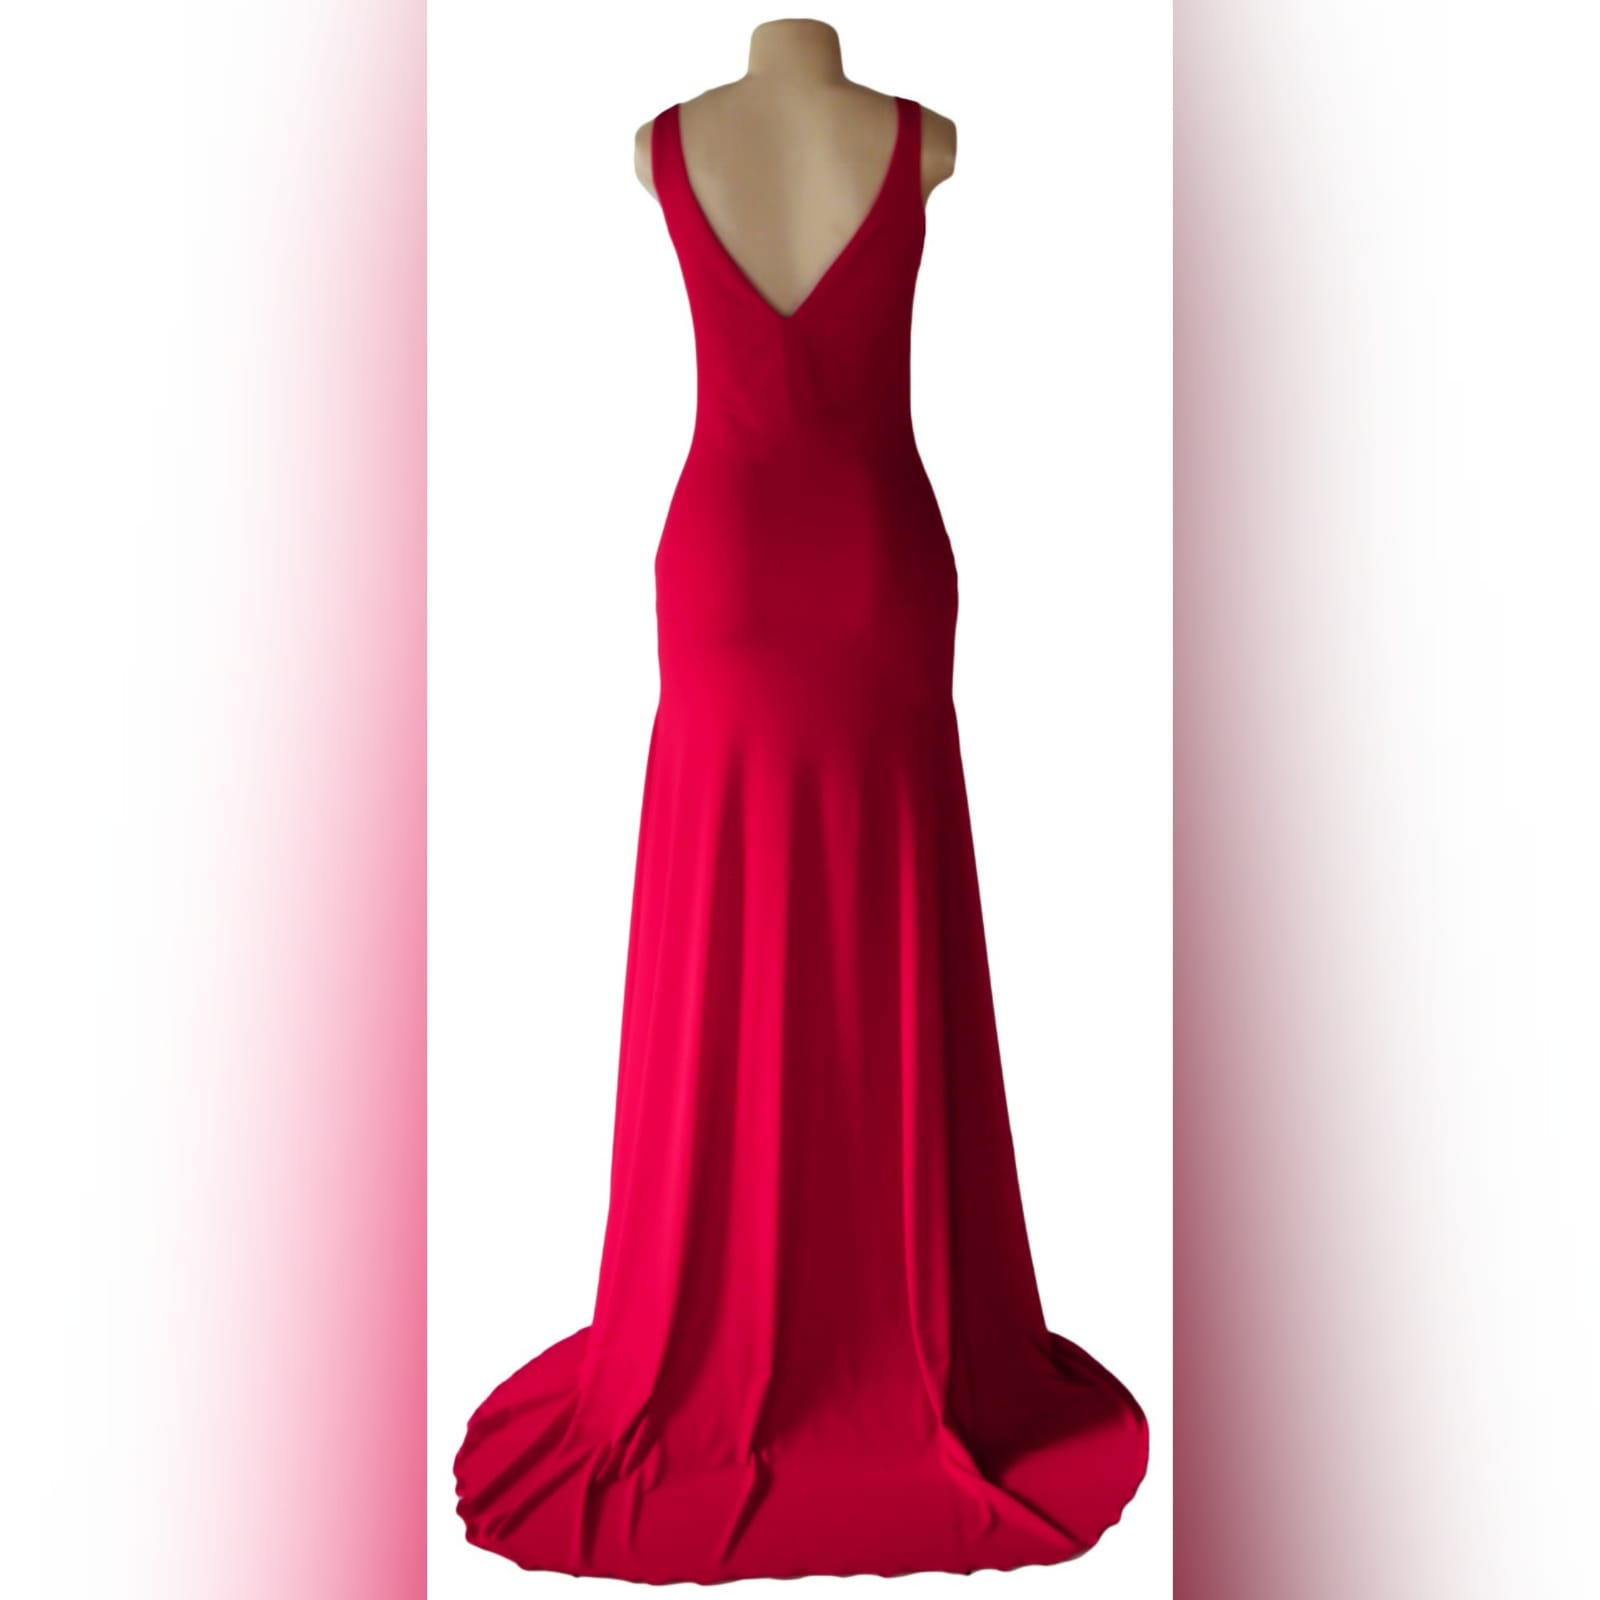 Red long sexy fitted prom dress 6 red long sexy fitted prom dress with a v neckline and v open back, with a slit and a train.